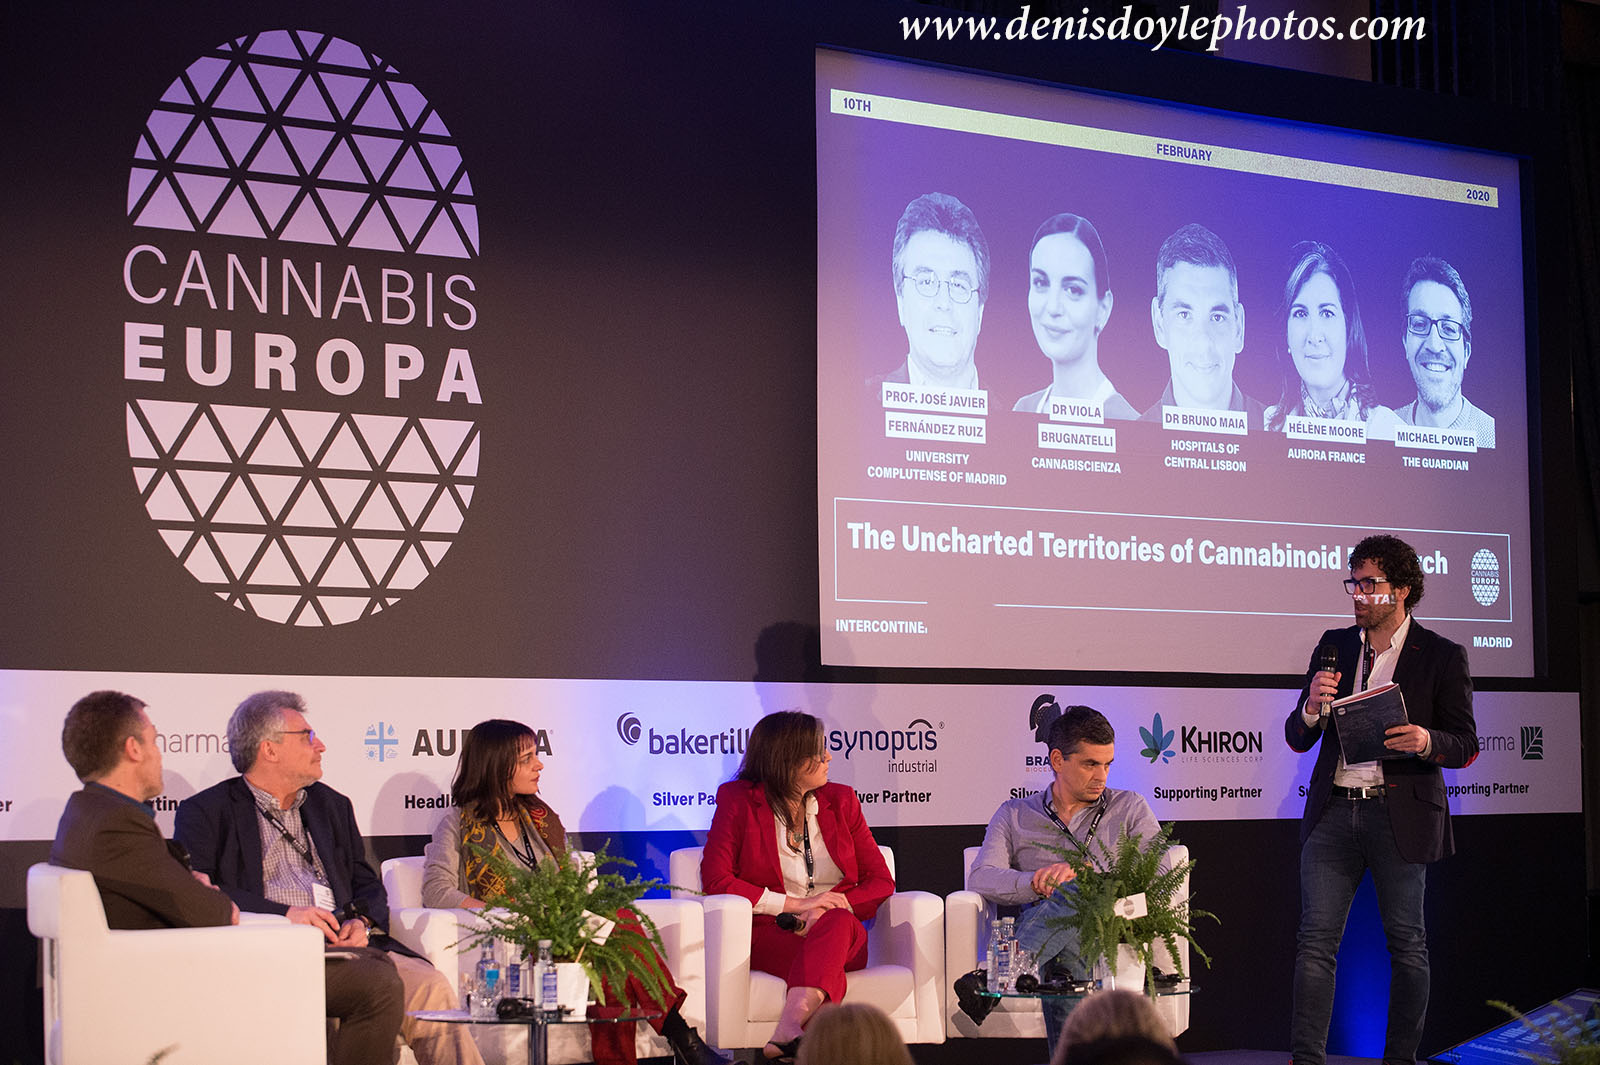 Cannabis_Europa_Event2020MadridDenisDoyle_low